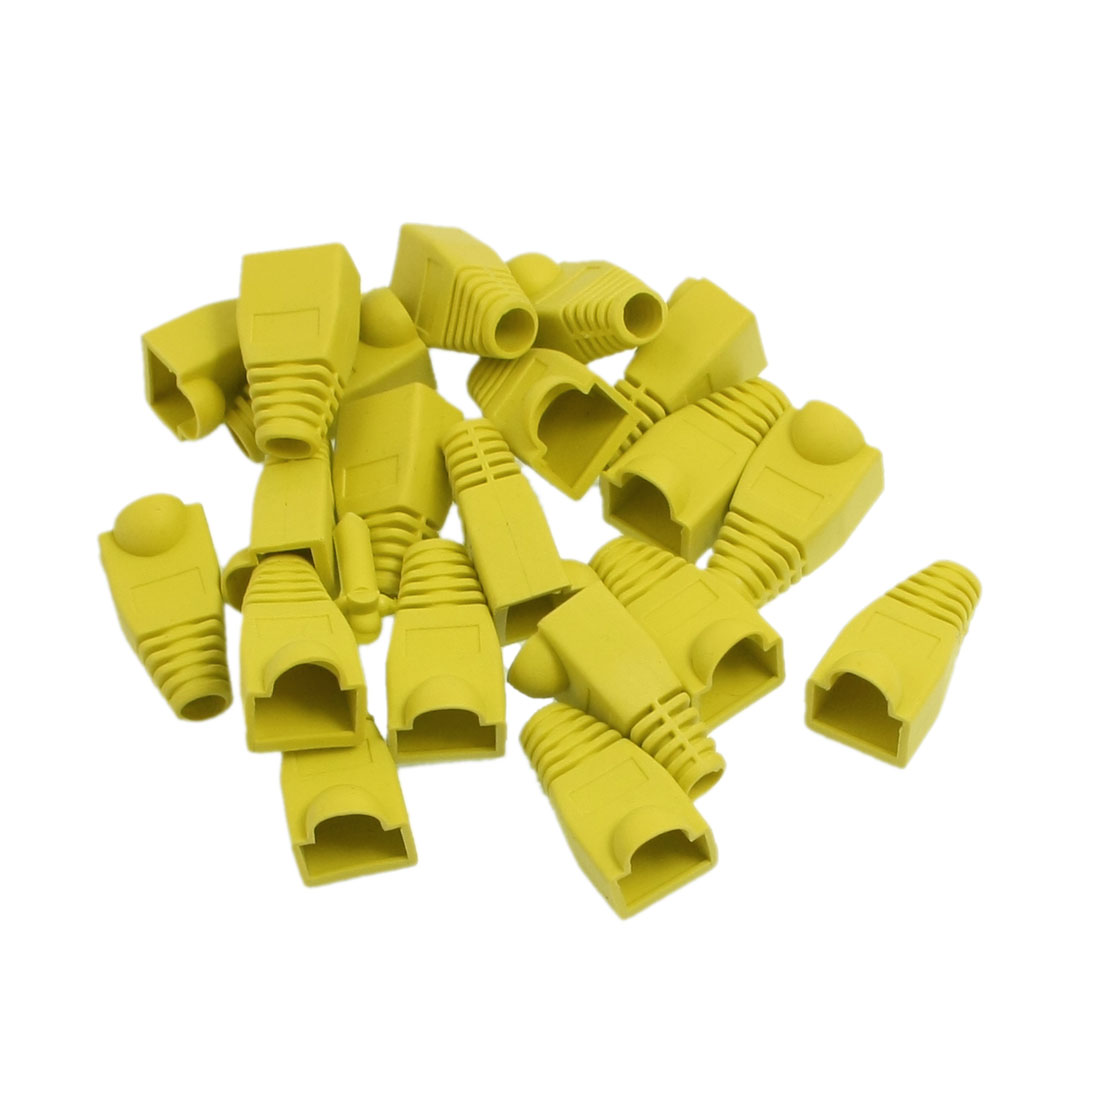 Anti Dust Yellow Plastic Boots Cover Cap for RJ45 20 Pieces